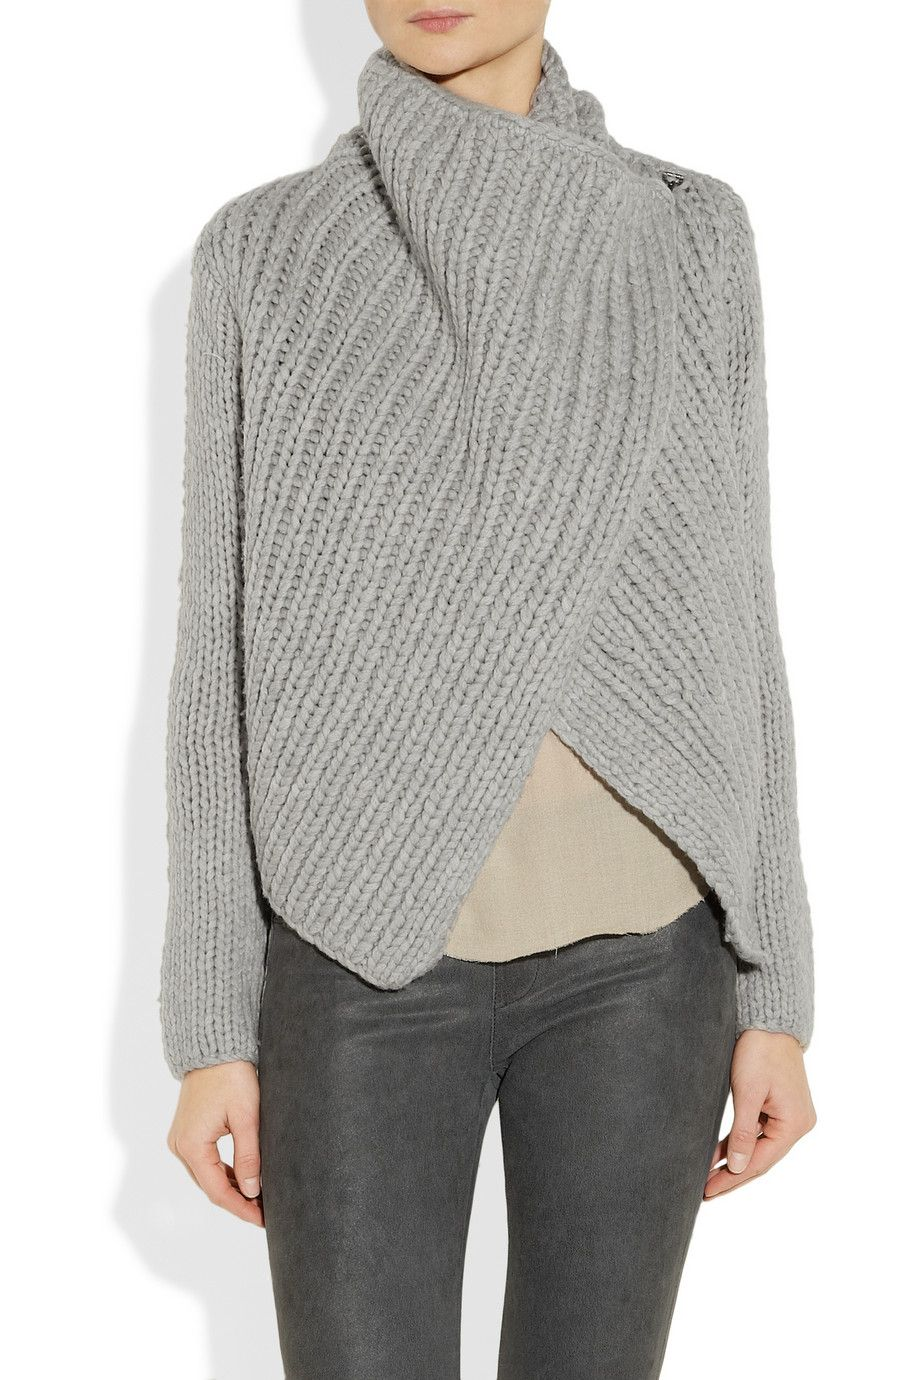 Pattern Knit Sweater : Helmut Lang Bulky rib knit sweater ~ love the easy wrap style! No pattern, un...